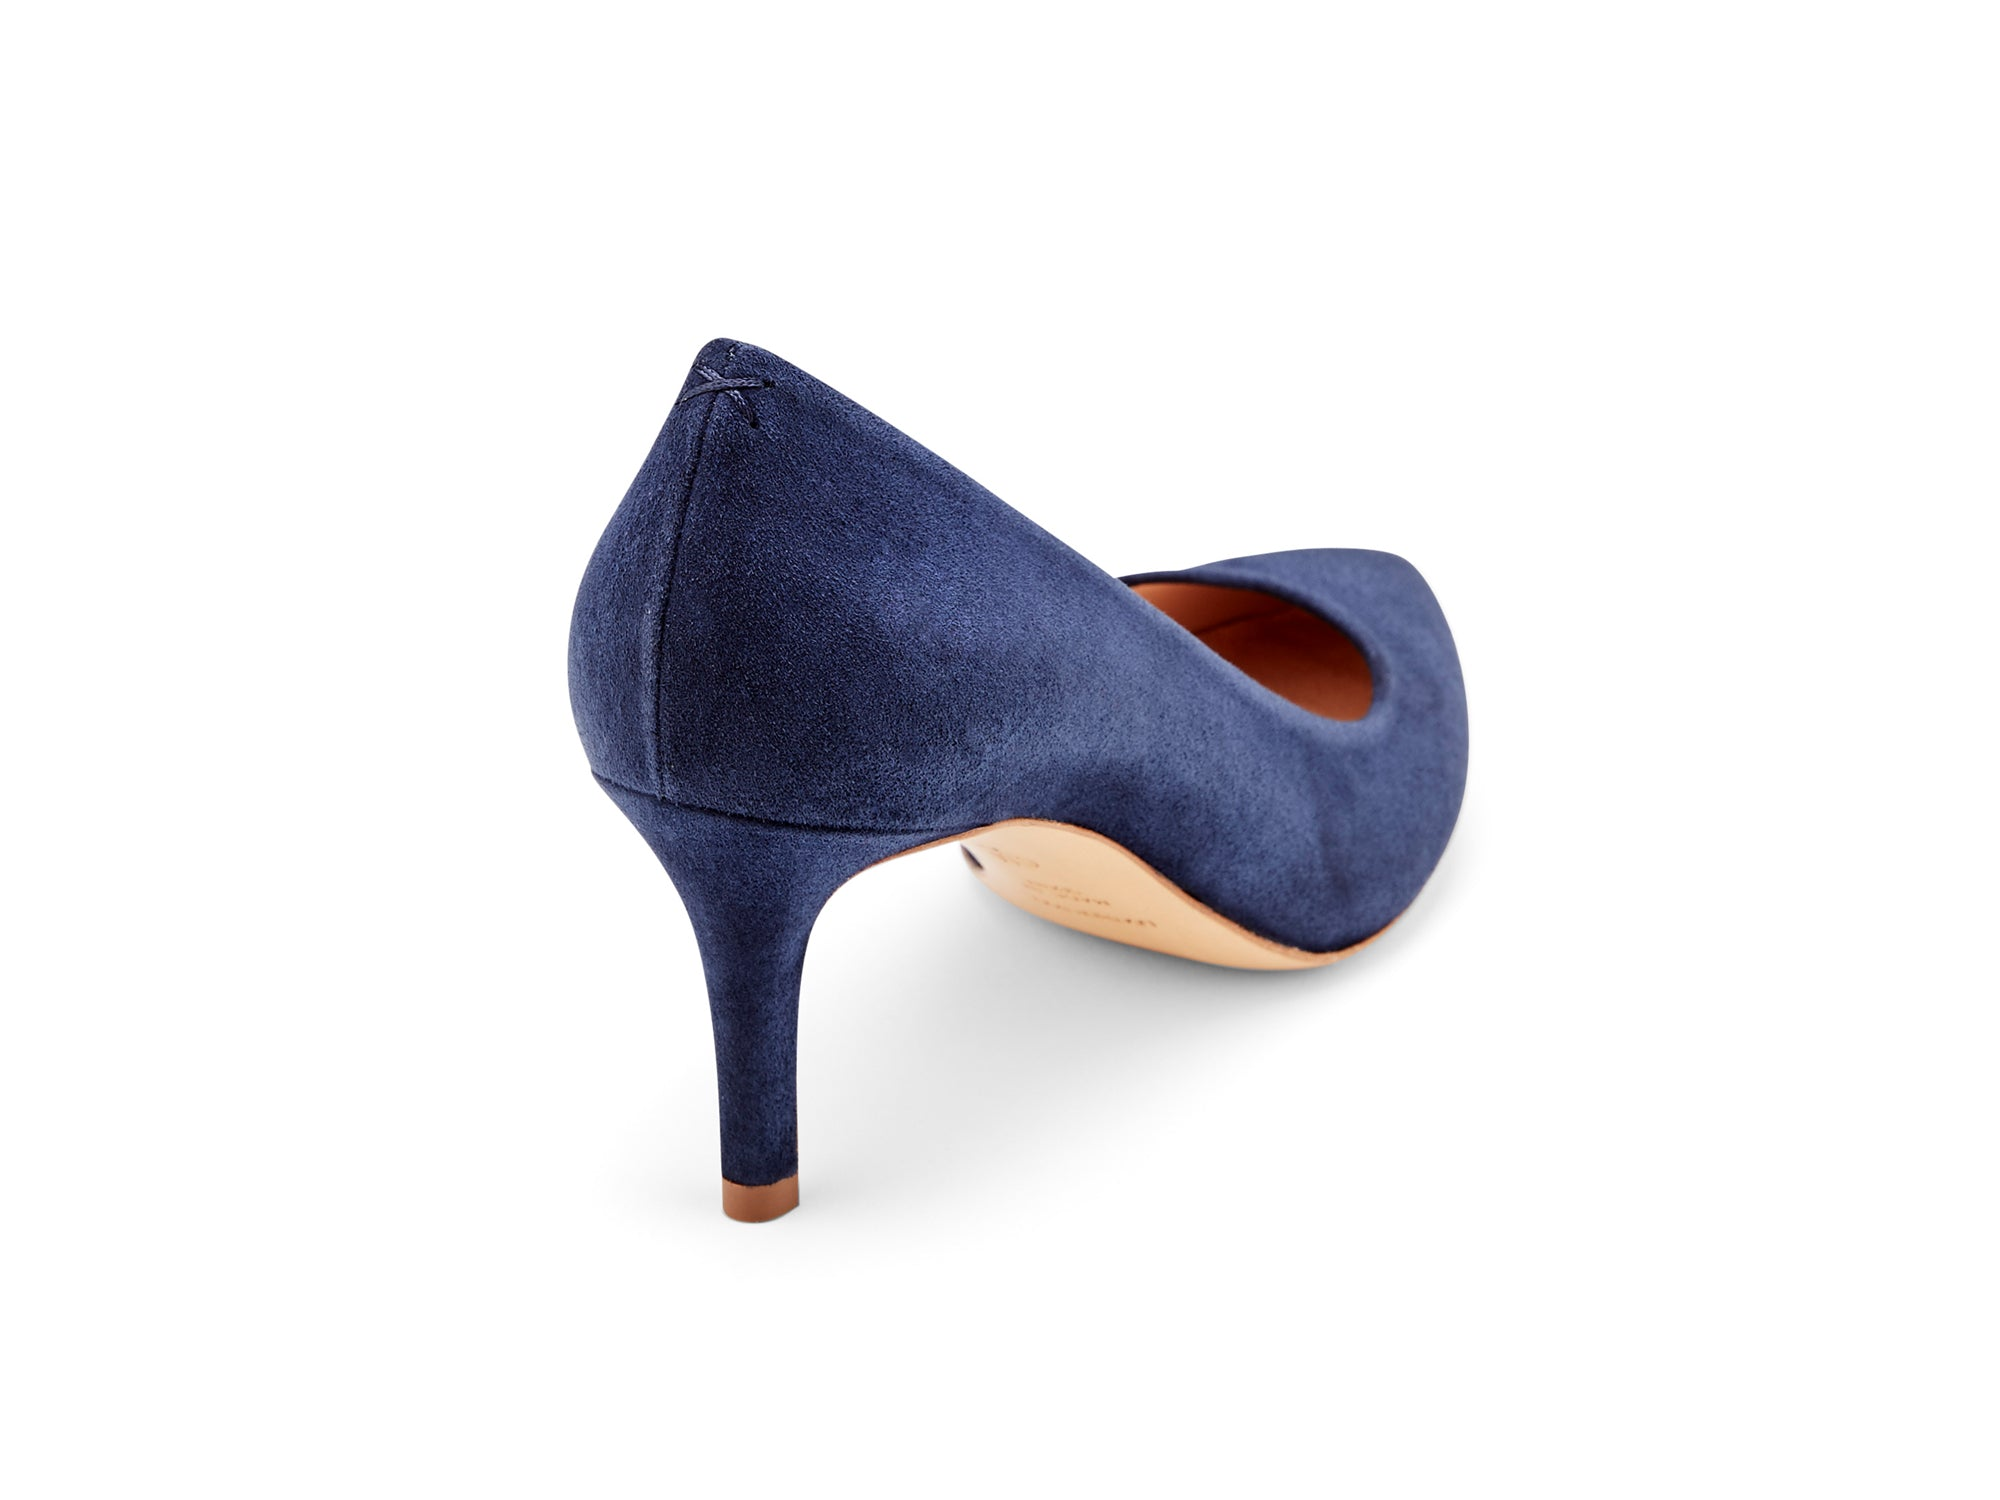 INEZ shoes Lola women pointed toe stiletto pump comfortable heel navy suede